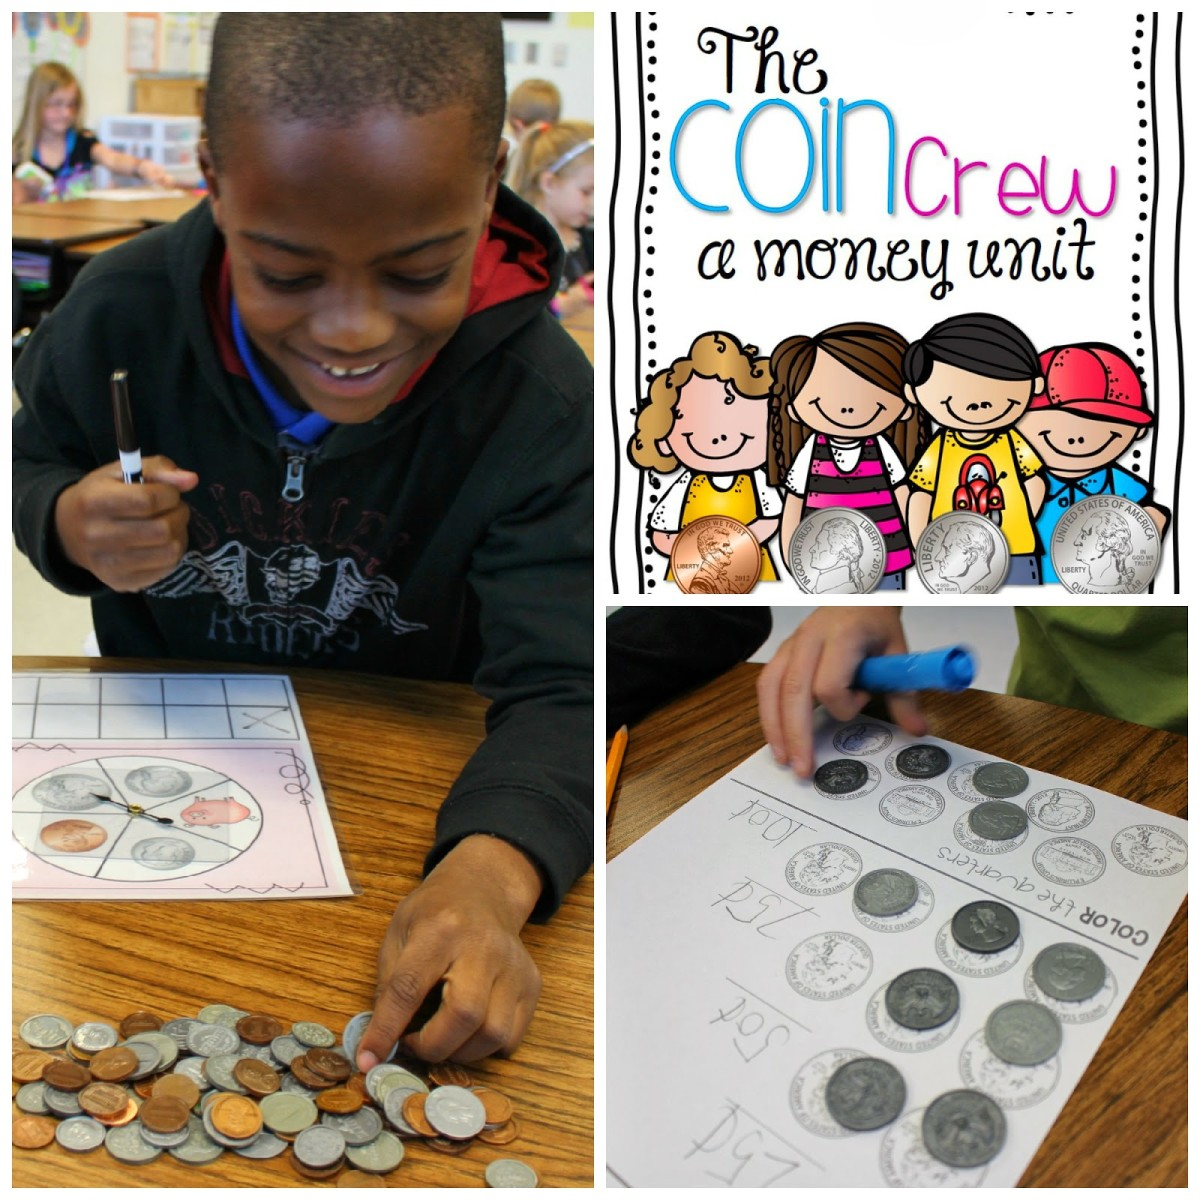 http://www.teacherspayteachers.com/Product/The-Coin-Crew-A-Money-Unit-1169008